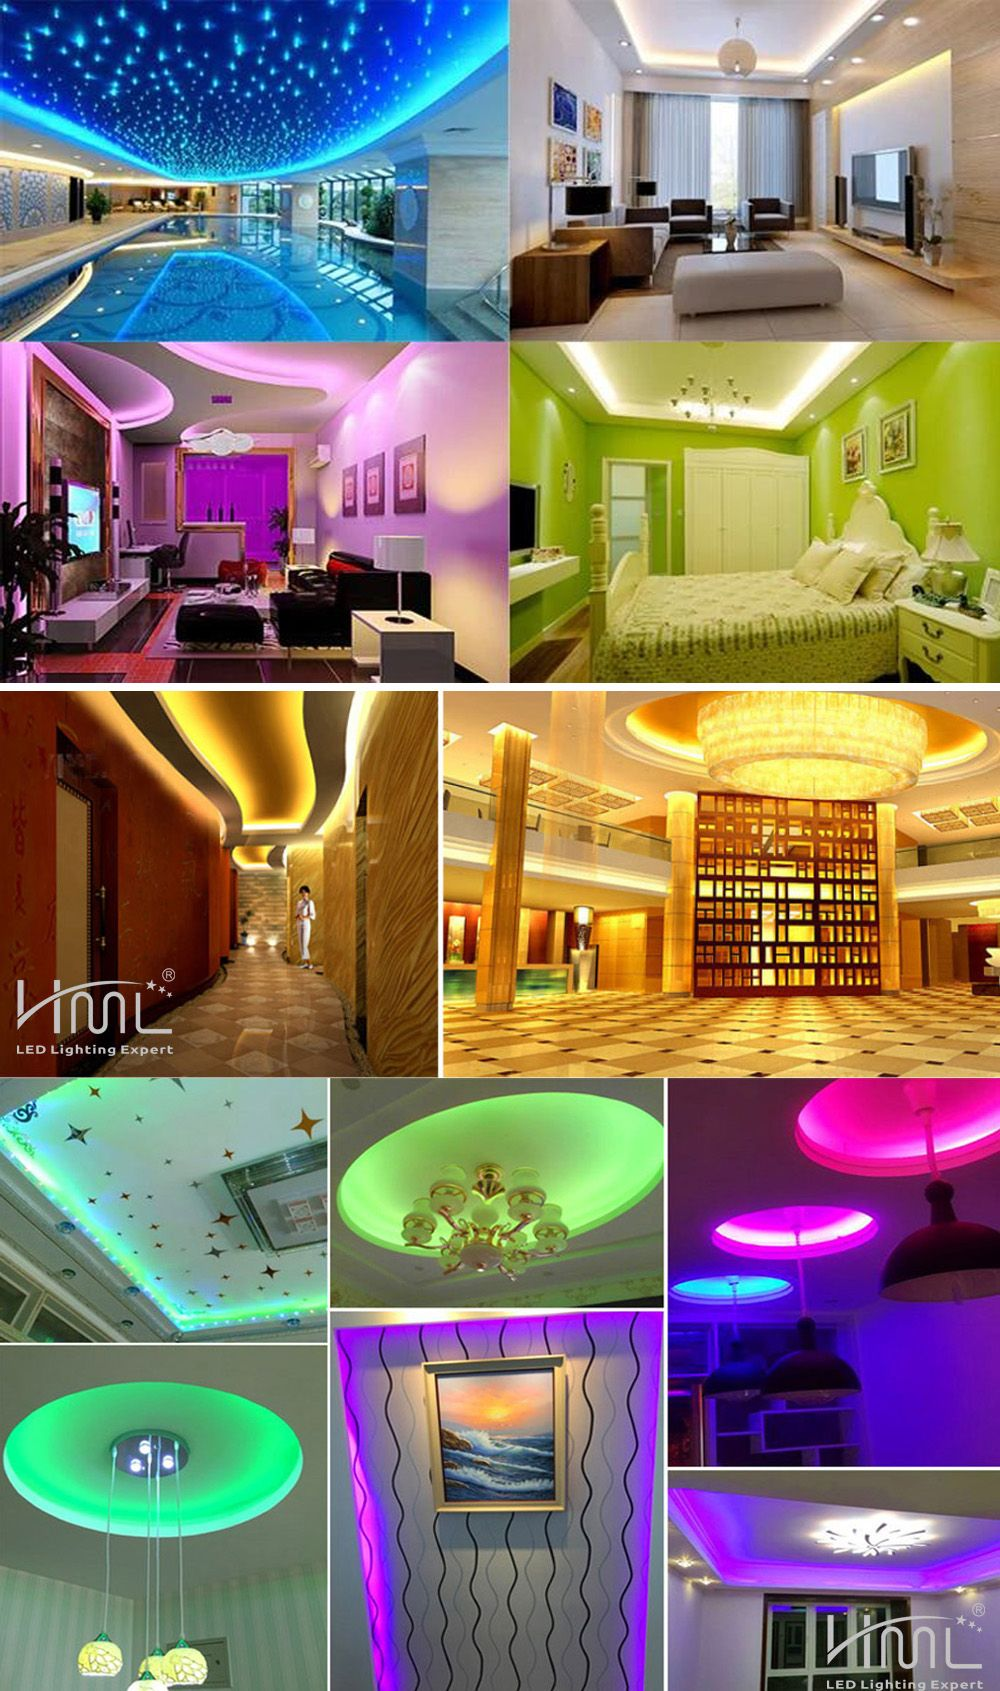 HML 2pcs 5M 24W RGB SMD2835 300 LED Strip Light - RGB COLOR with IR 20 Keys Music Remote Control and EU Adapter